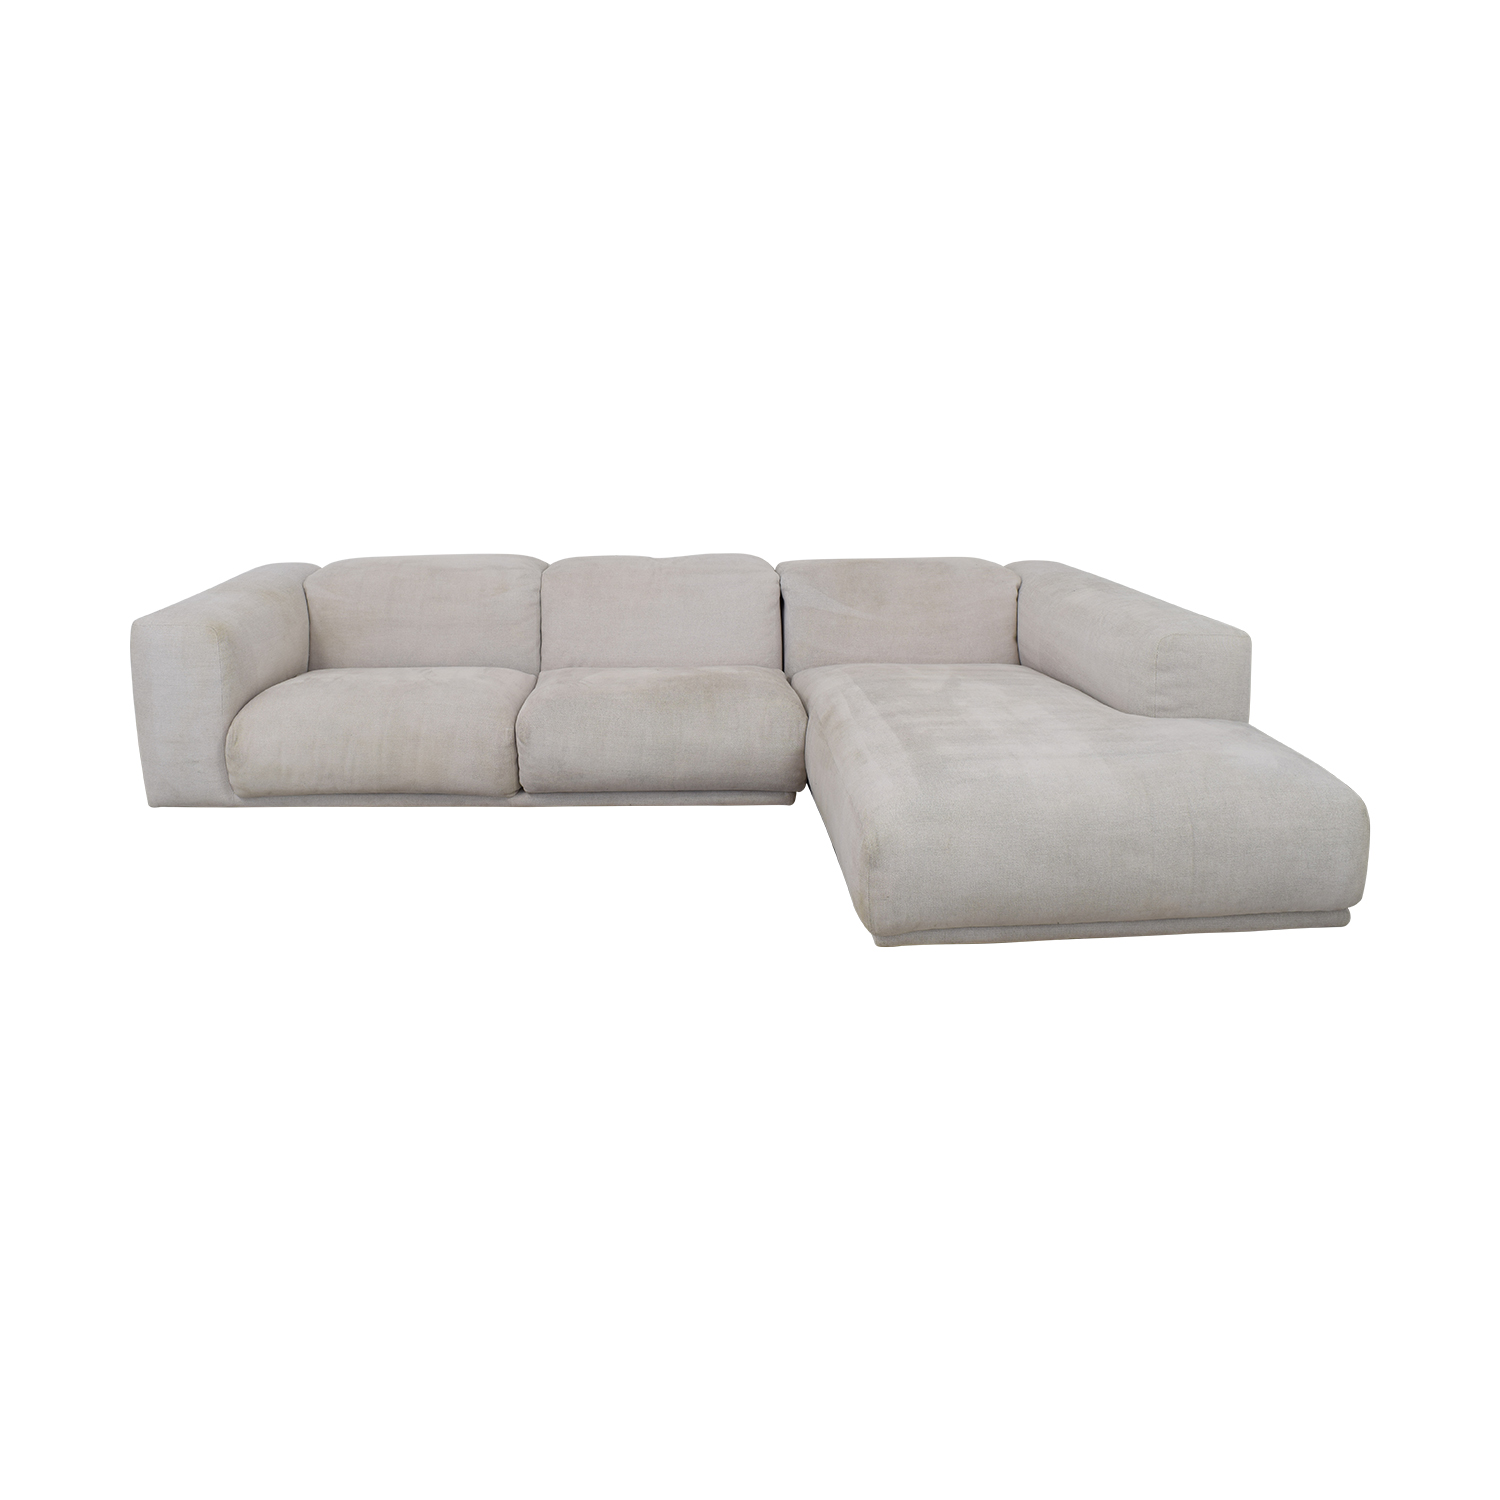 Design Within Reach Design Within Reach Kelston Sectional with Chaise for sale